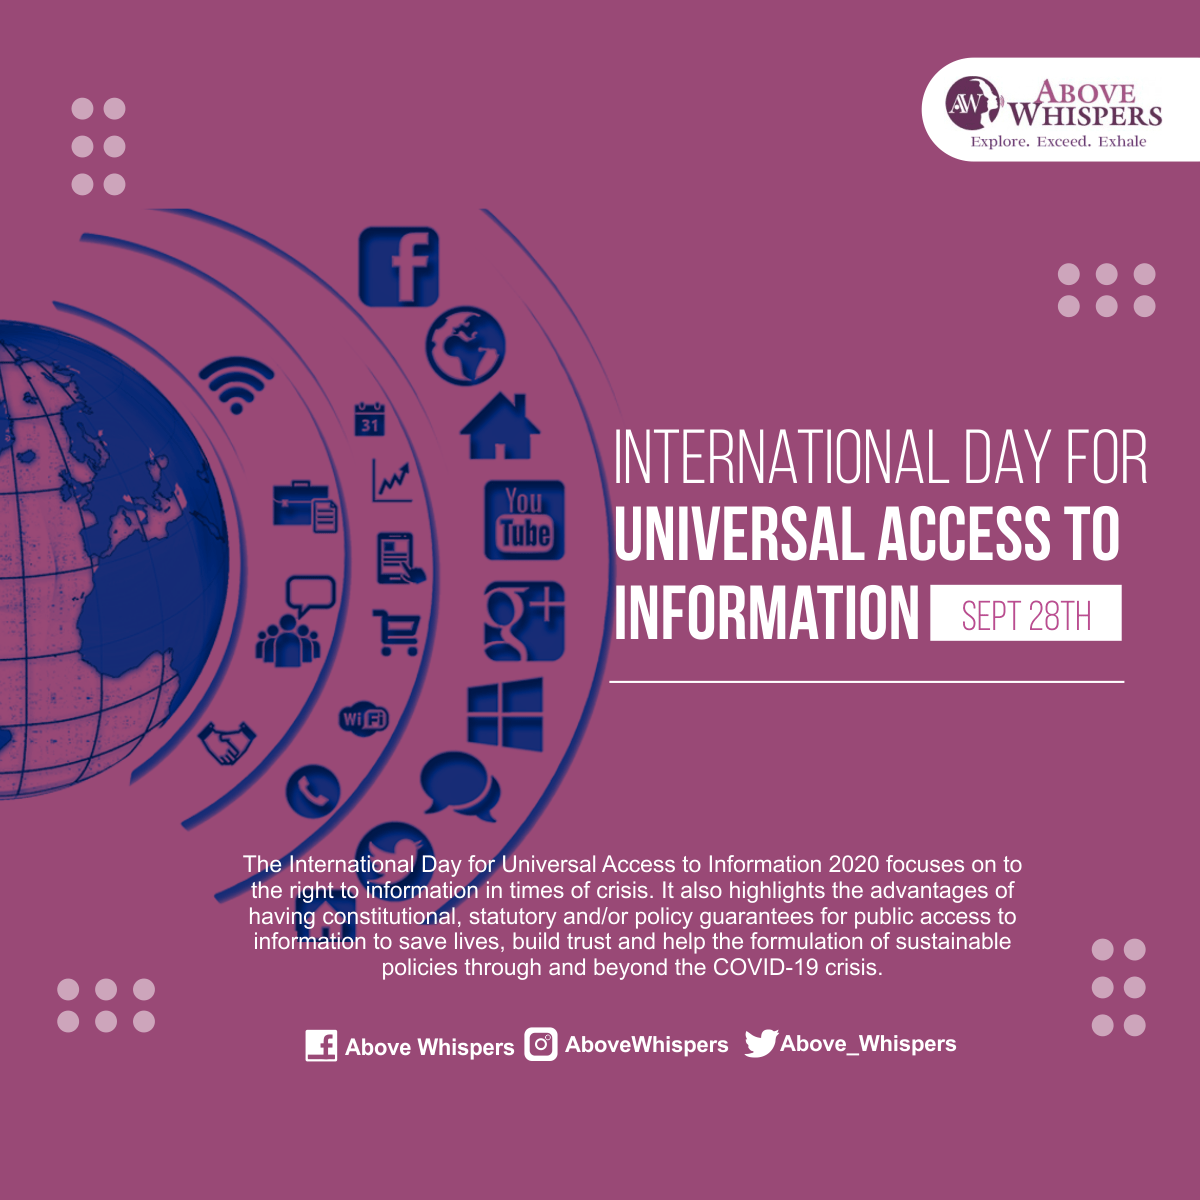 International Day For access to information 2